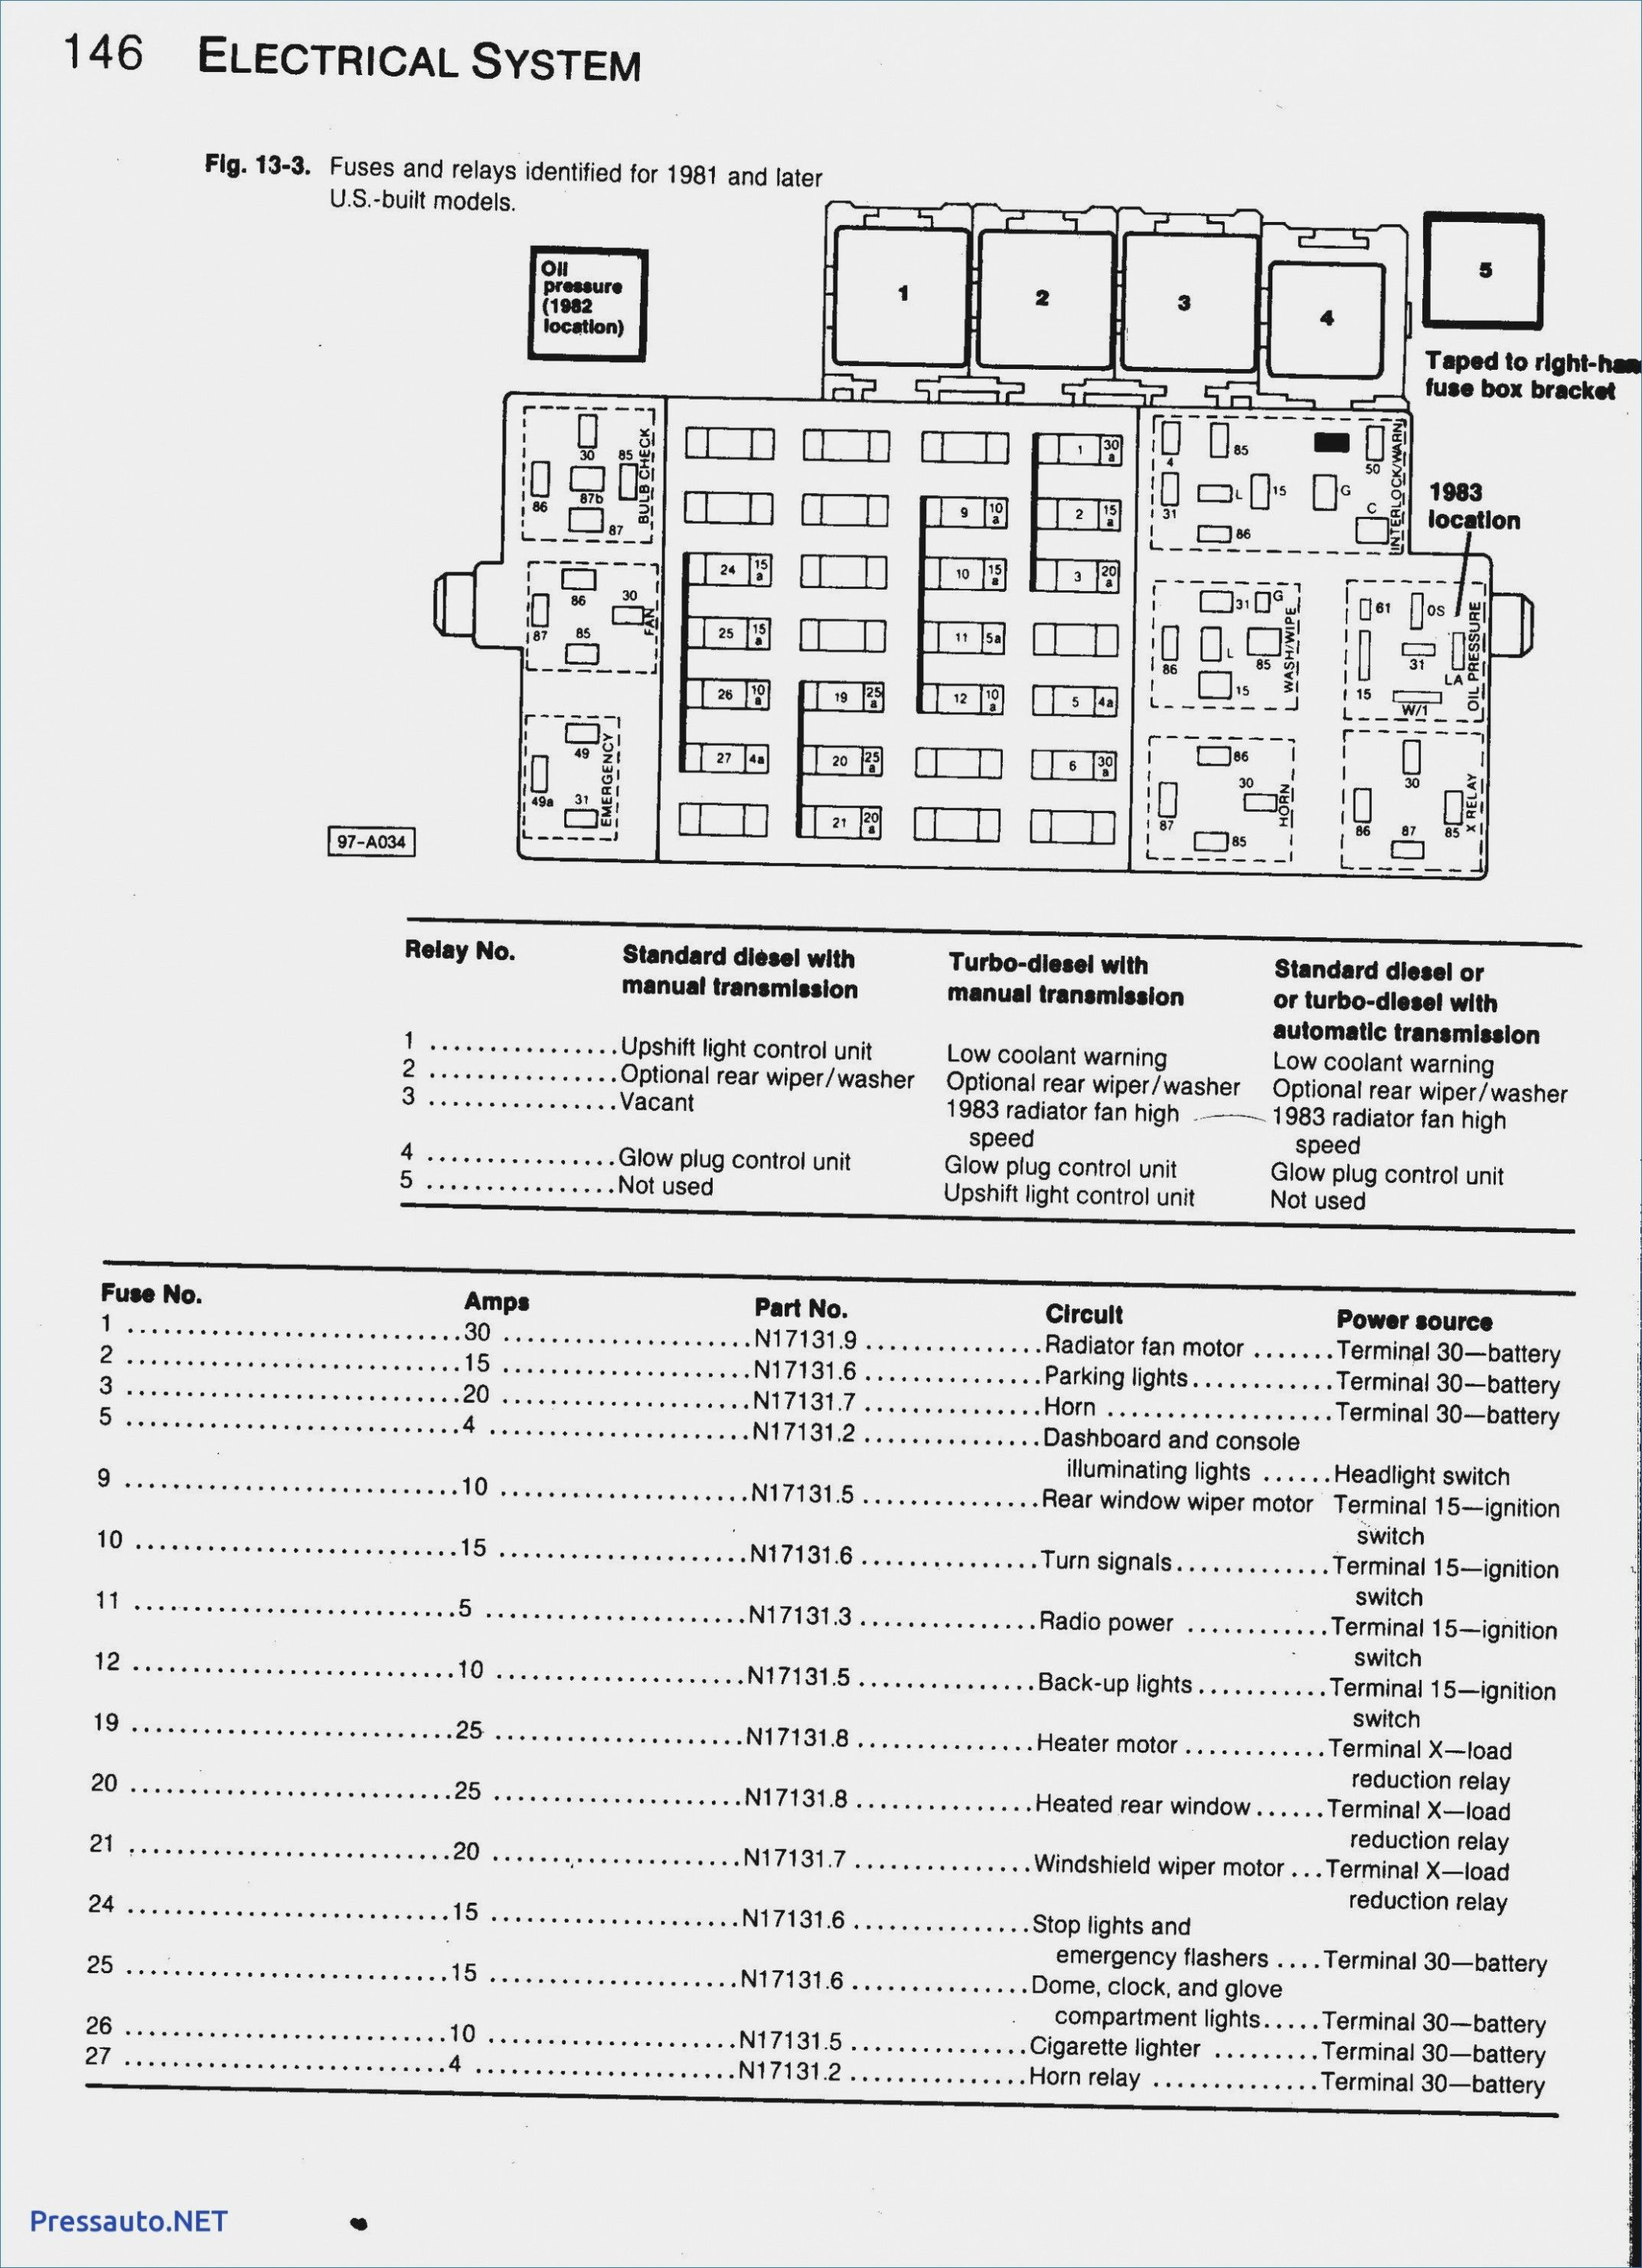 fuse box diagram 2011 vw jetta | fuse box, vw jetta, control unit  pinterest